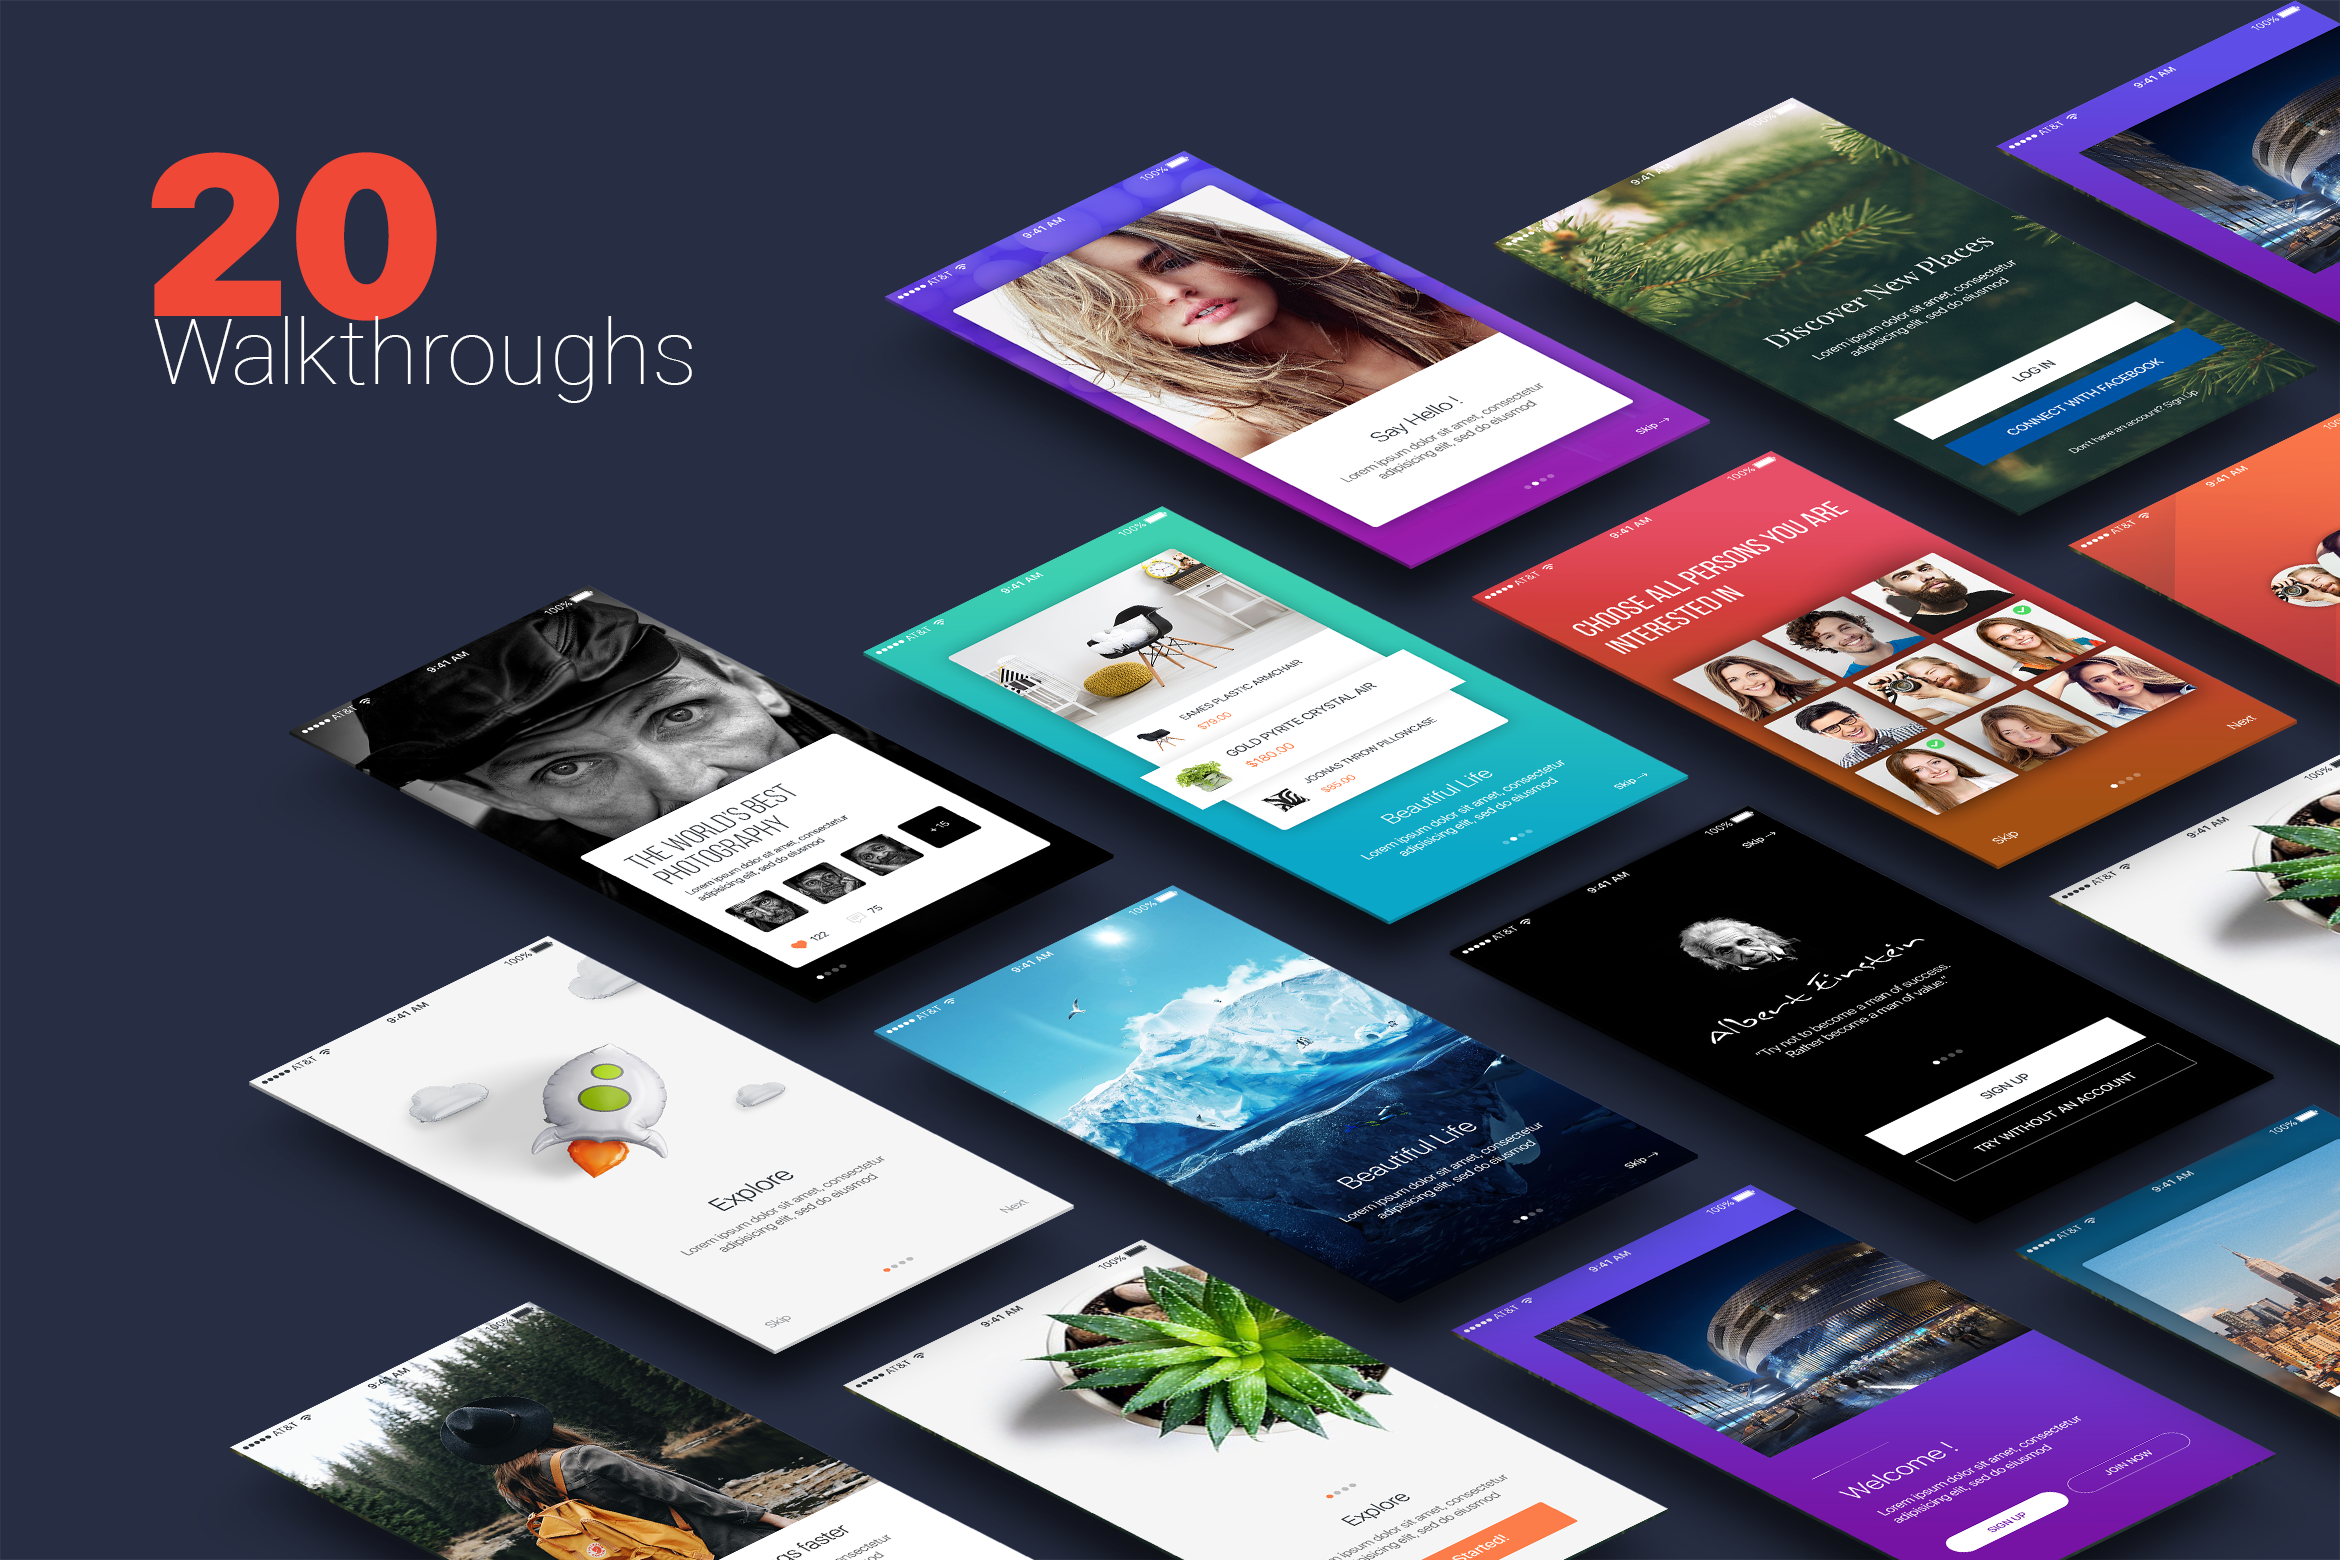 Walkthroughs - Mobile Template UI example image 1